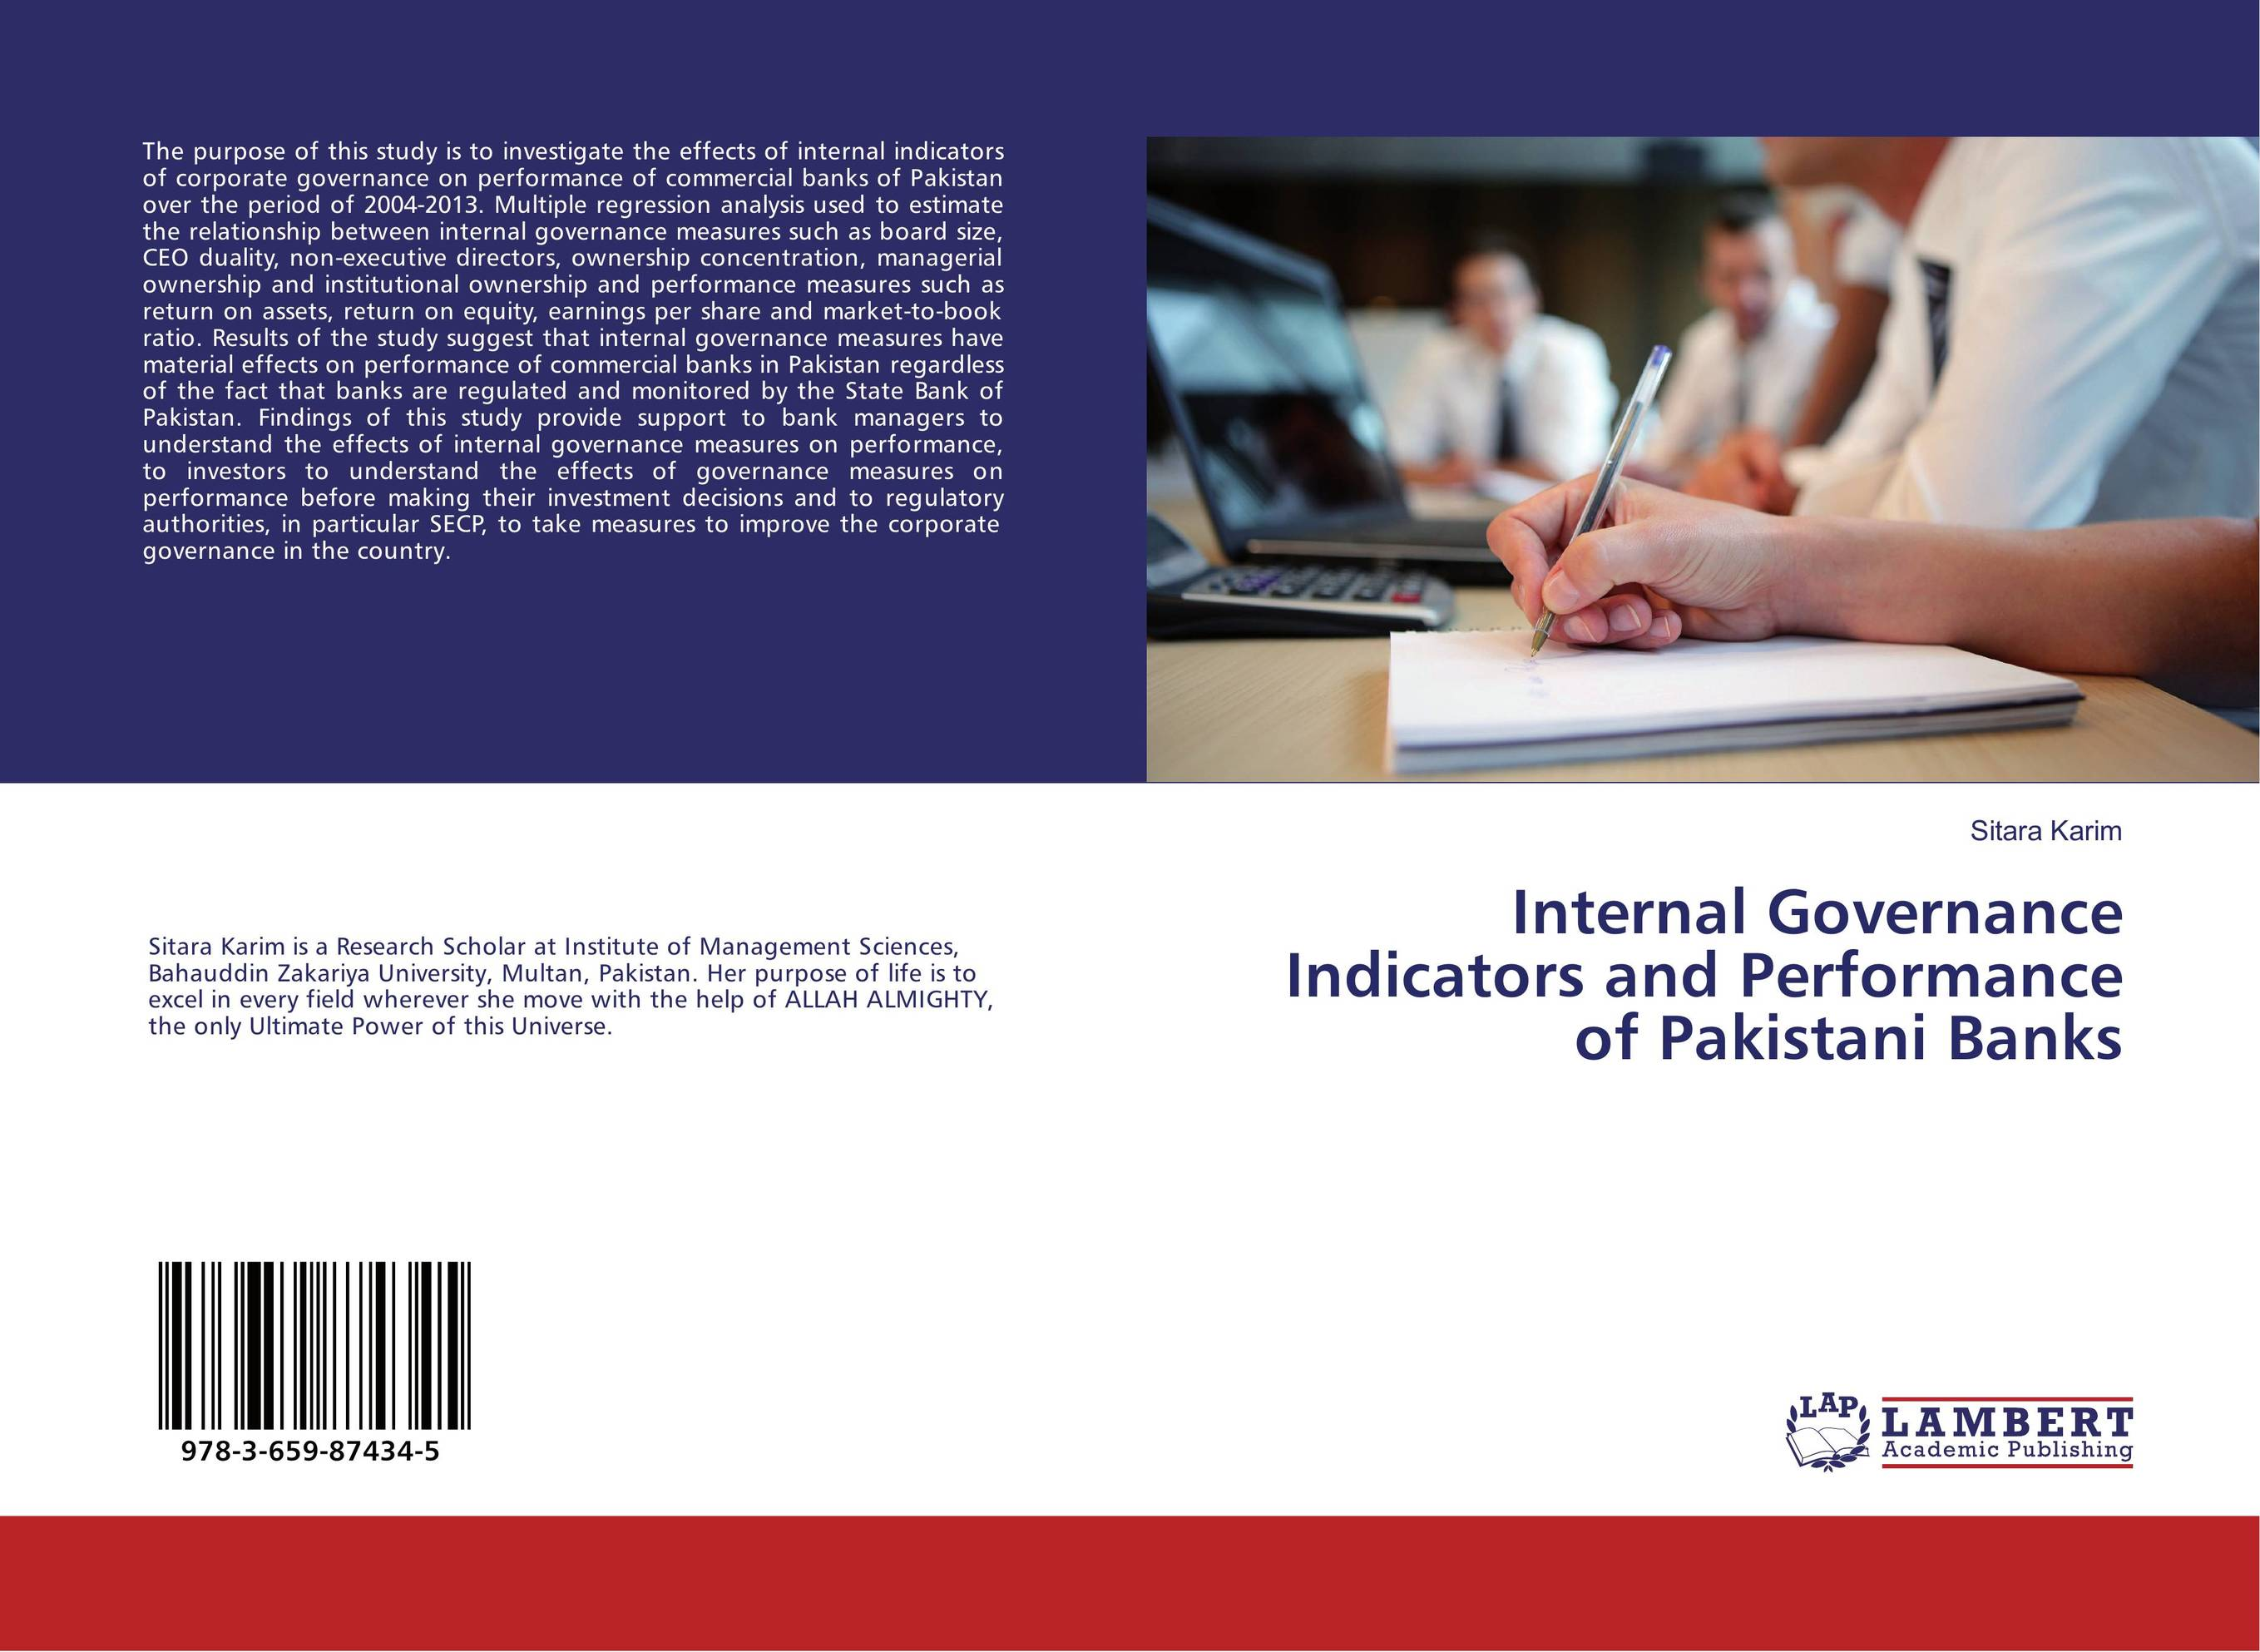 Internal Governance Indicators and Performance of Pakistani Banks